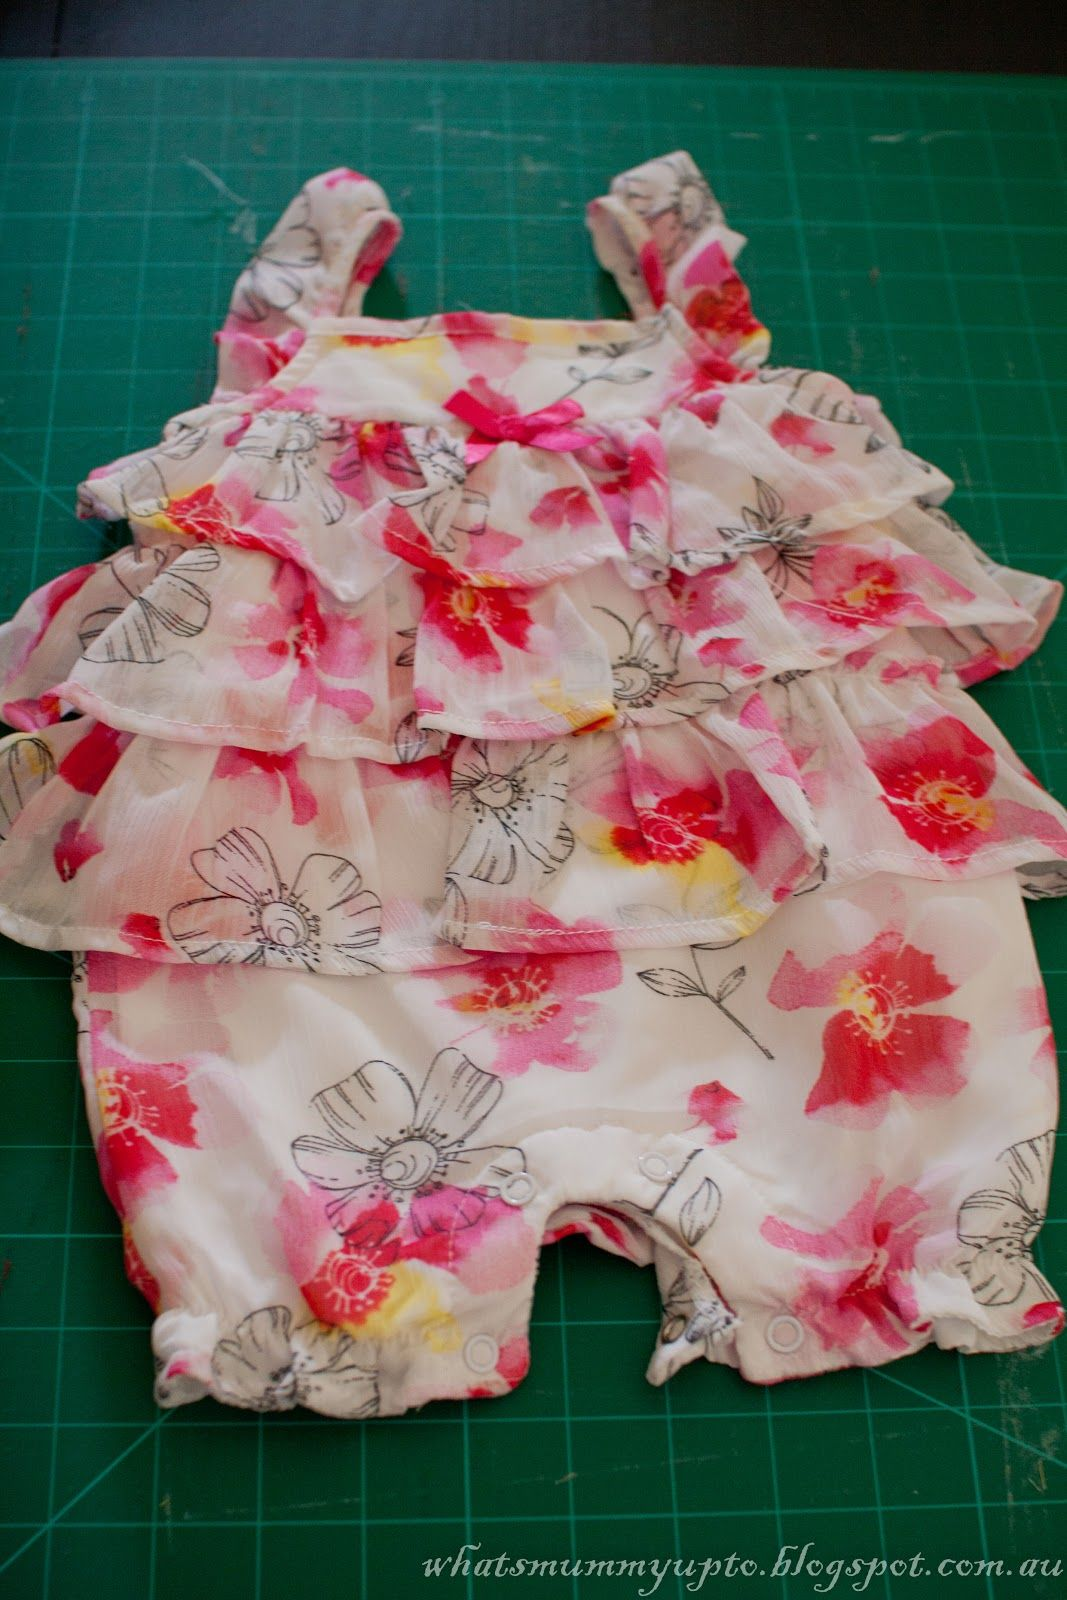 What's Mummy Up To ...: Waste Not Want Not - Turning a Onesie into a Top